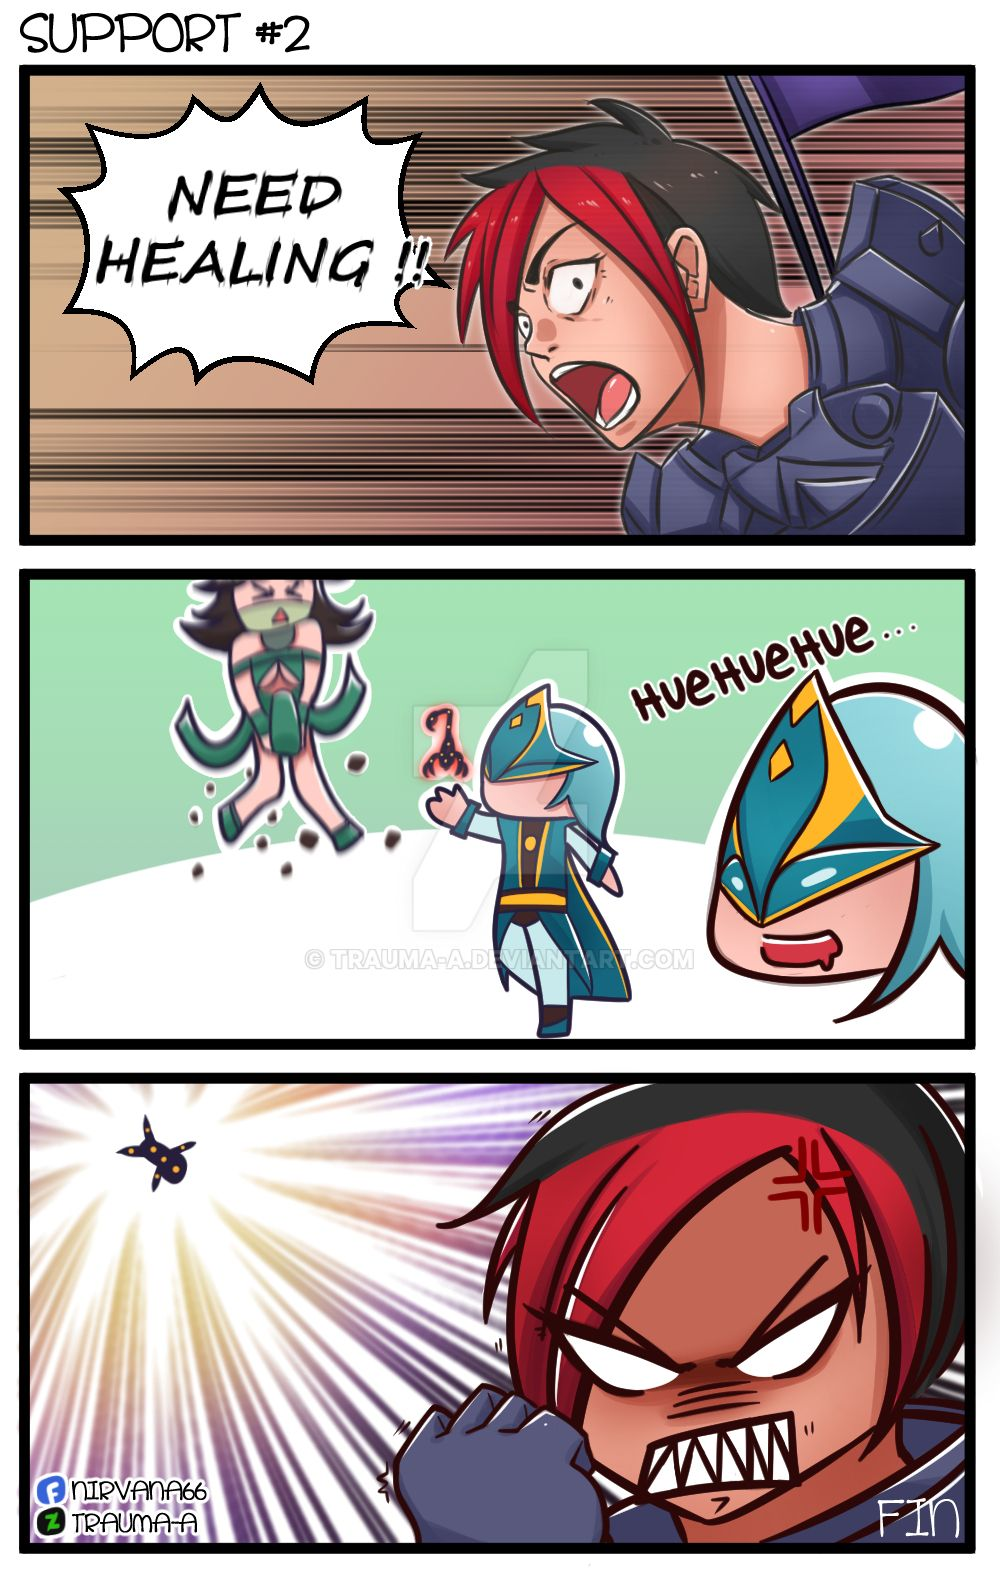 paladins comic support 2 by traumaa on deviantart